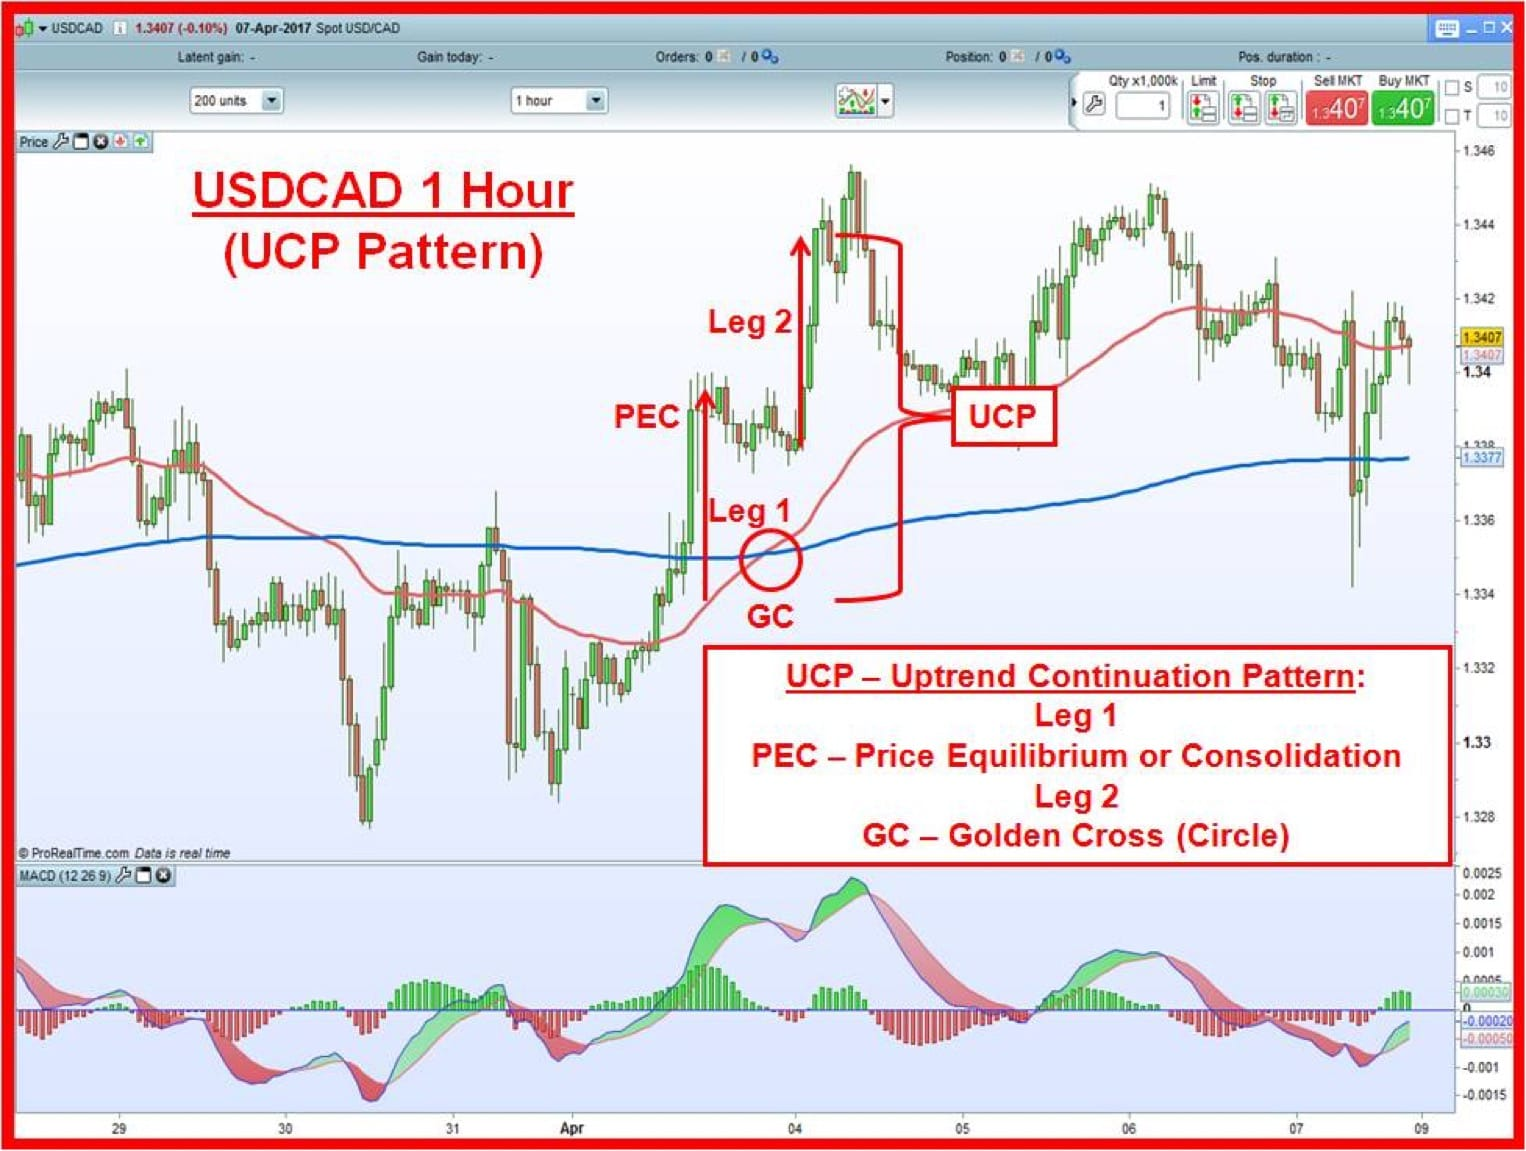 USDCAD 1 hour chart with Golden Cross and UCP pattern